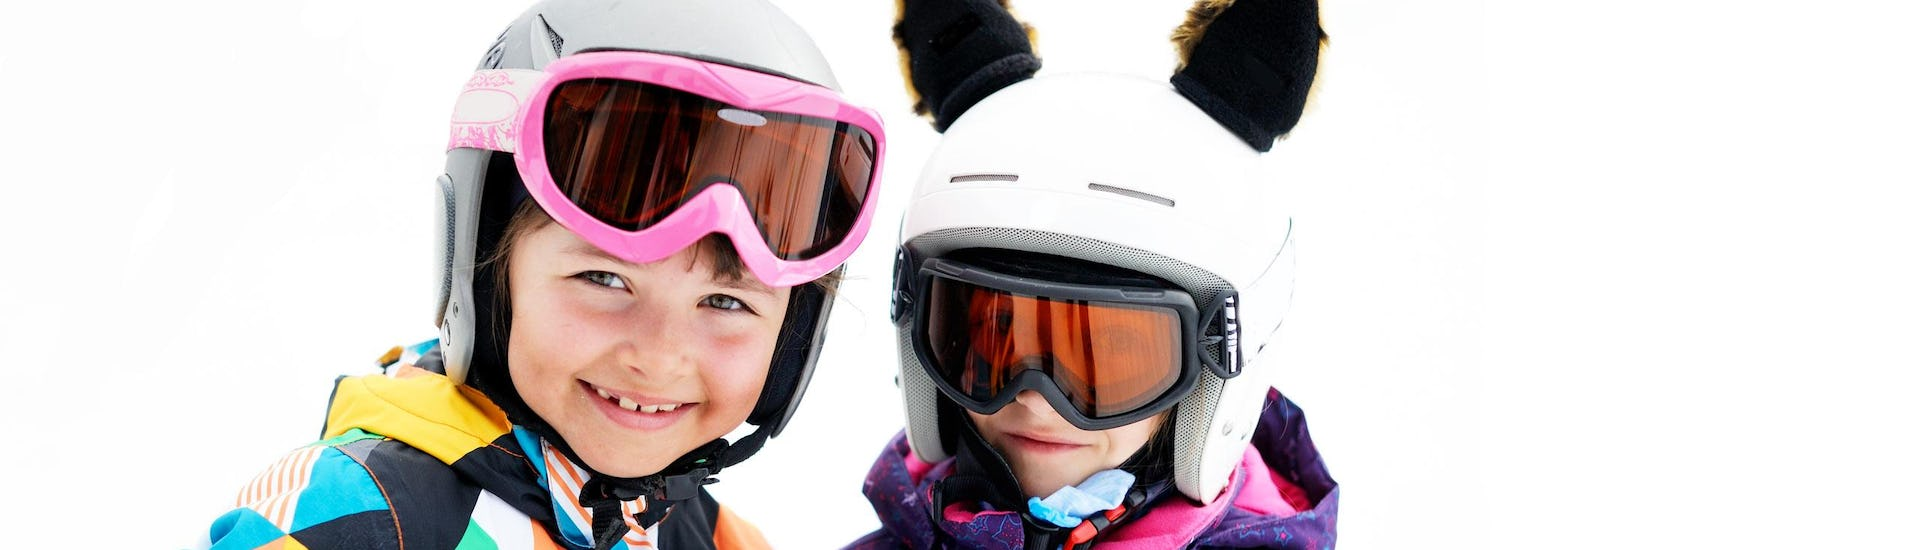 Two young children smiling at the camera during one of the Ski Lessons for Kids (3-14 years) - Half Day - All Levels organised by Schneesportschule Wildkogel.